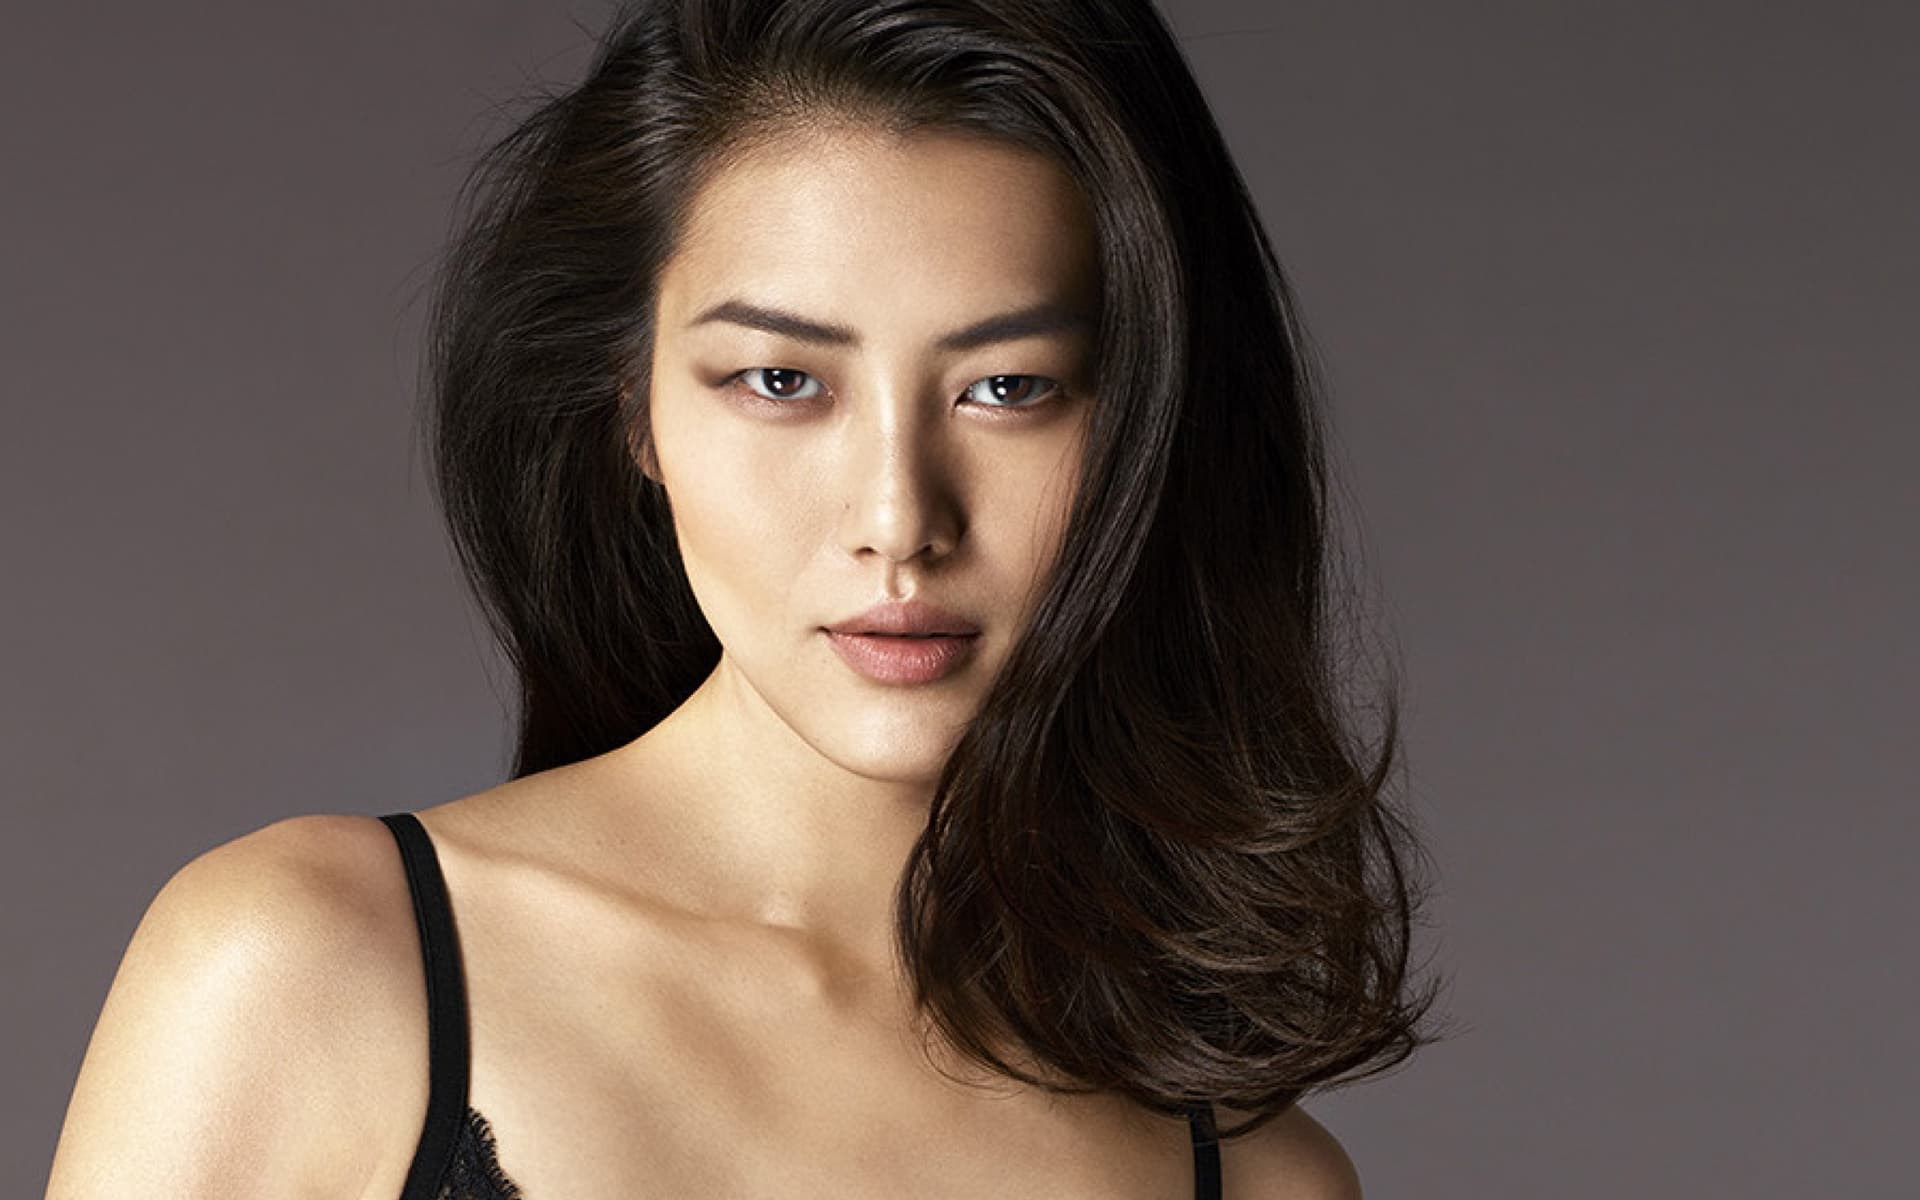 Wallpaper Super Cars Download 24 Liu Wen Wallpapers High Quality Resolution Download